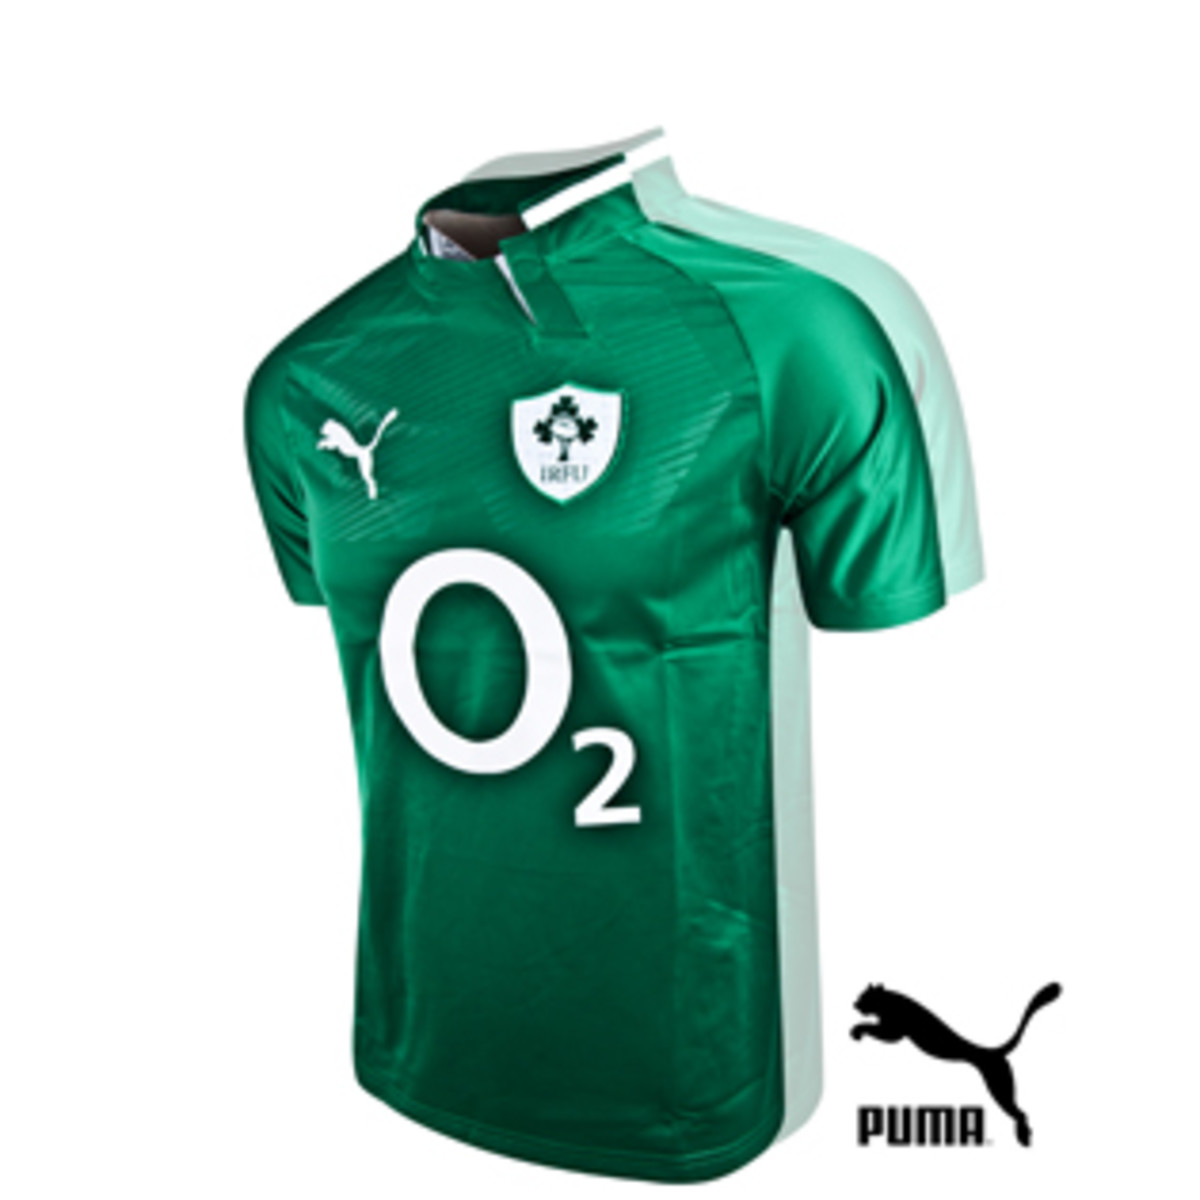 Ireland's home kit for 2012